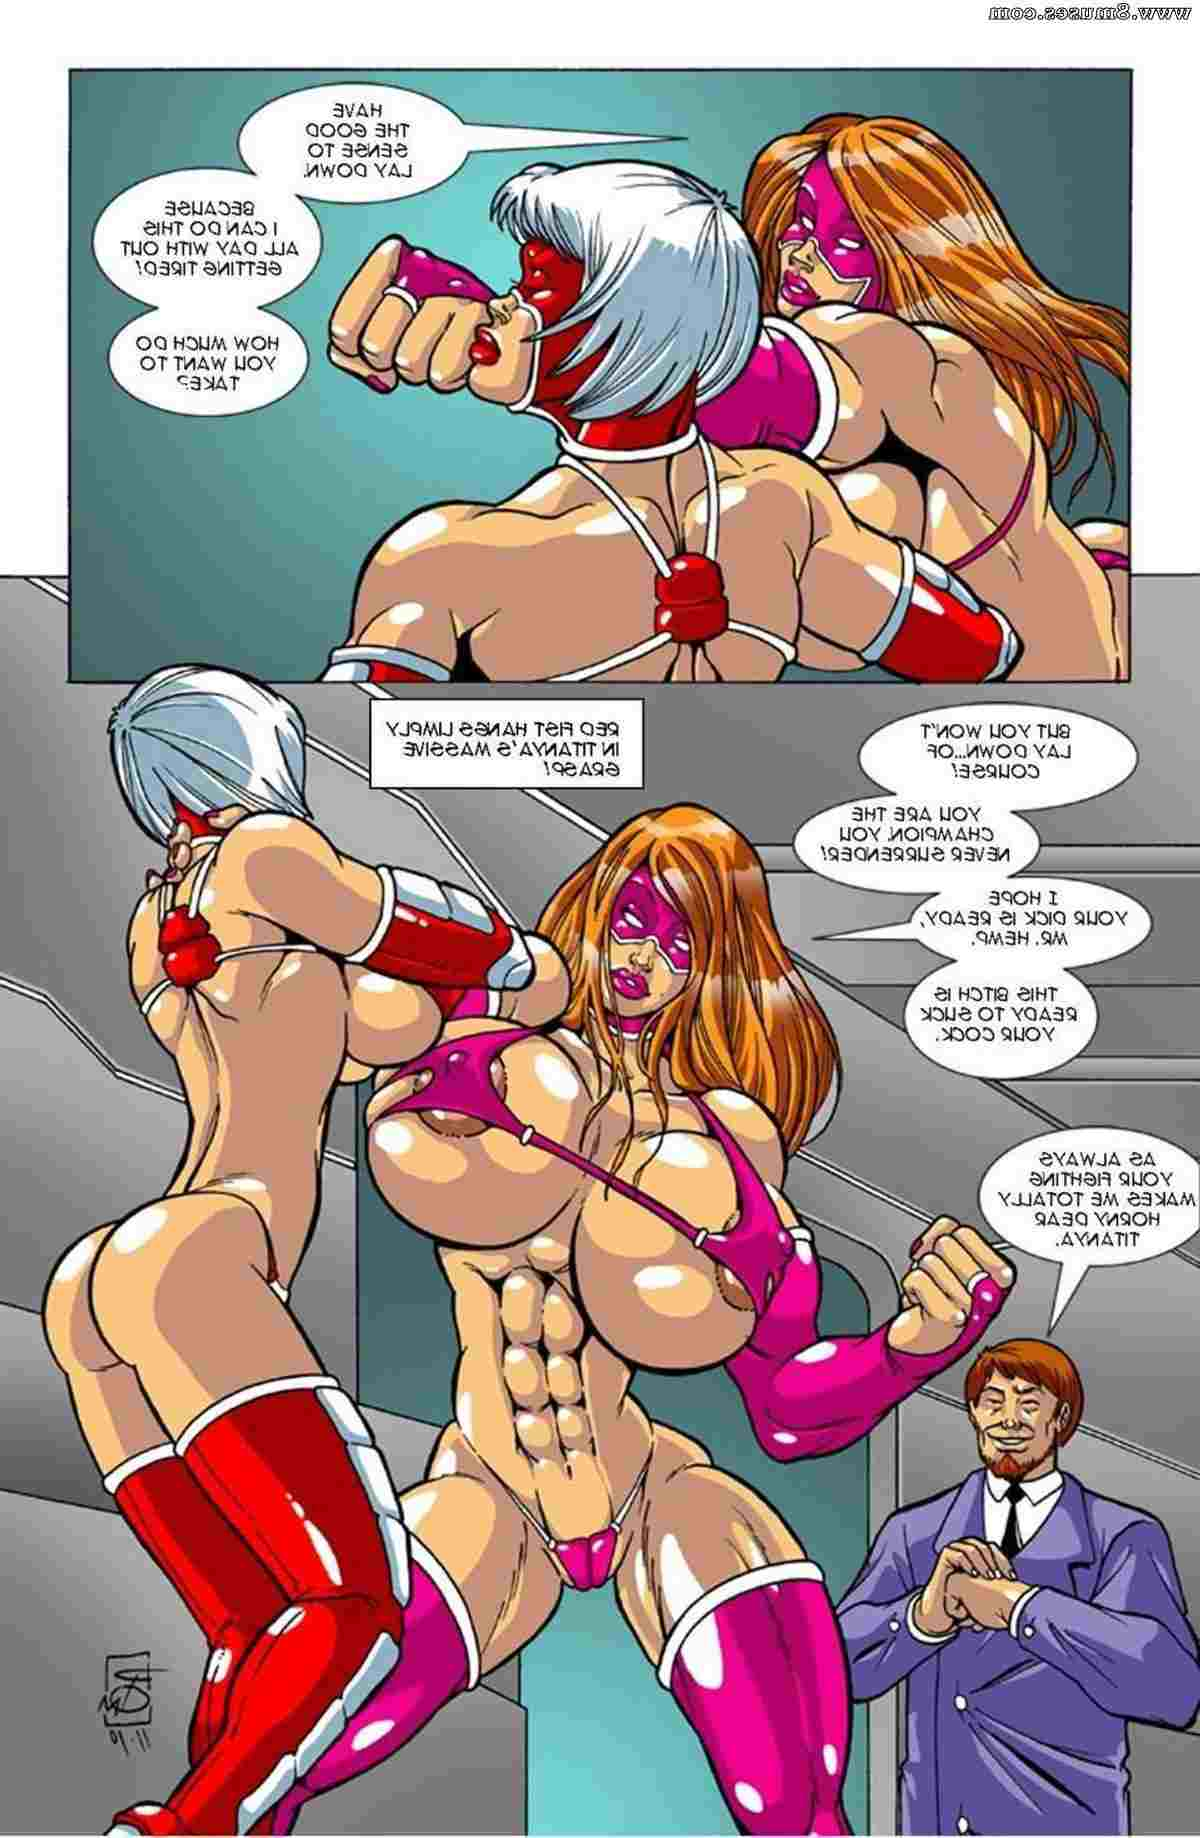 Central-Comics/Monster-Babe-Central/Omega-Fighters Omega_Fighters__8muses_-_Sex_and_Porn_Comics_29.jpg